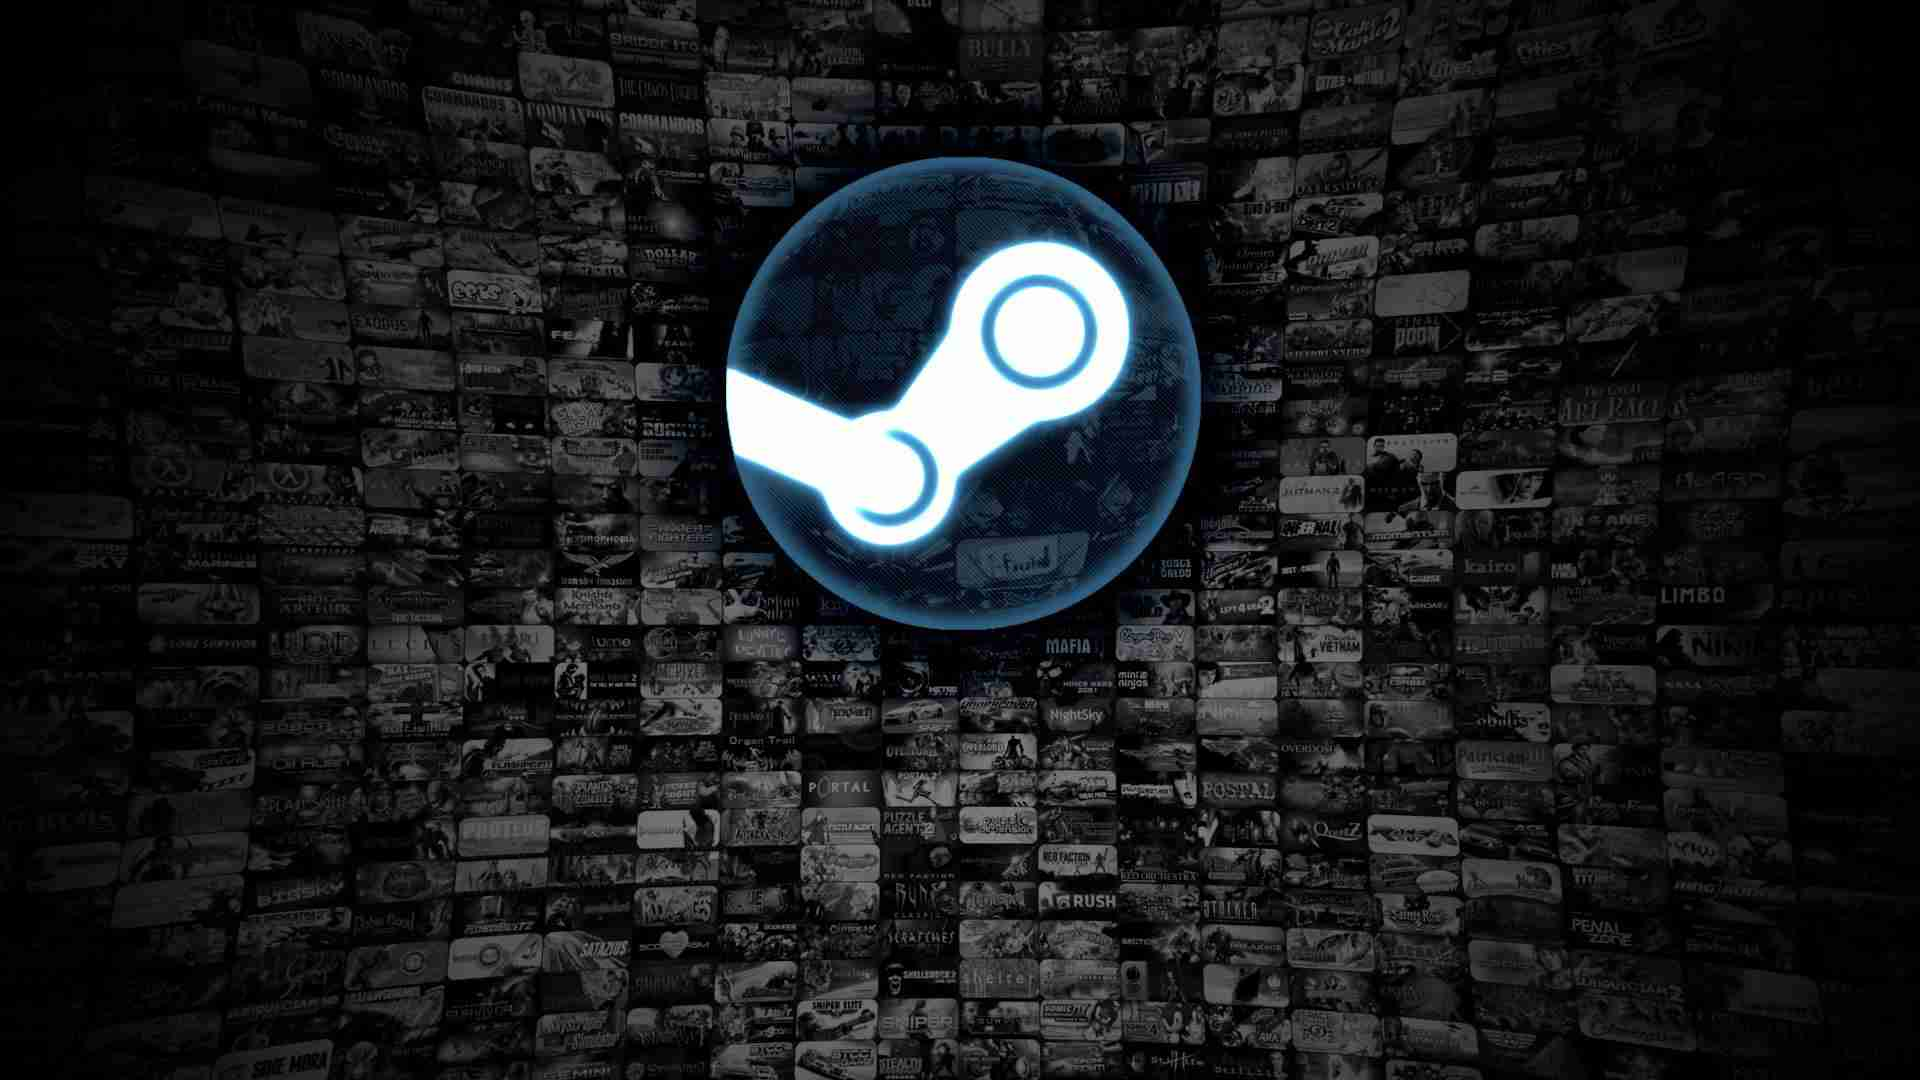 Steam Defends Regional Pricing by Limiting Region Swapping